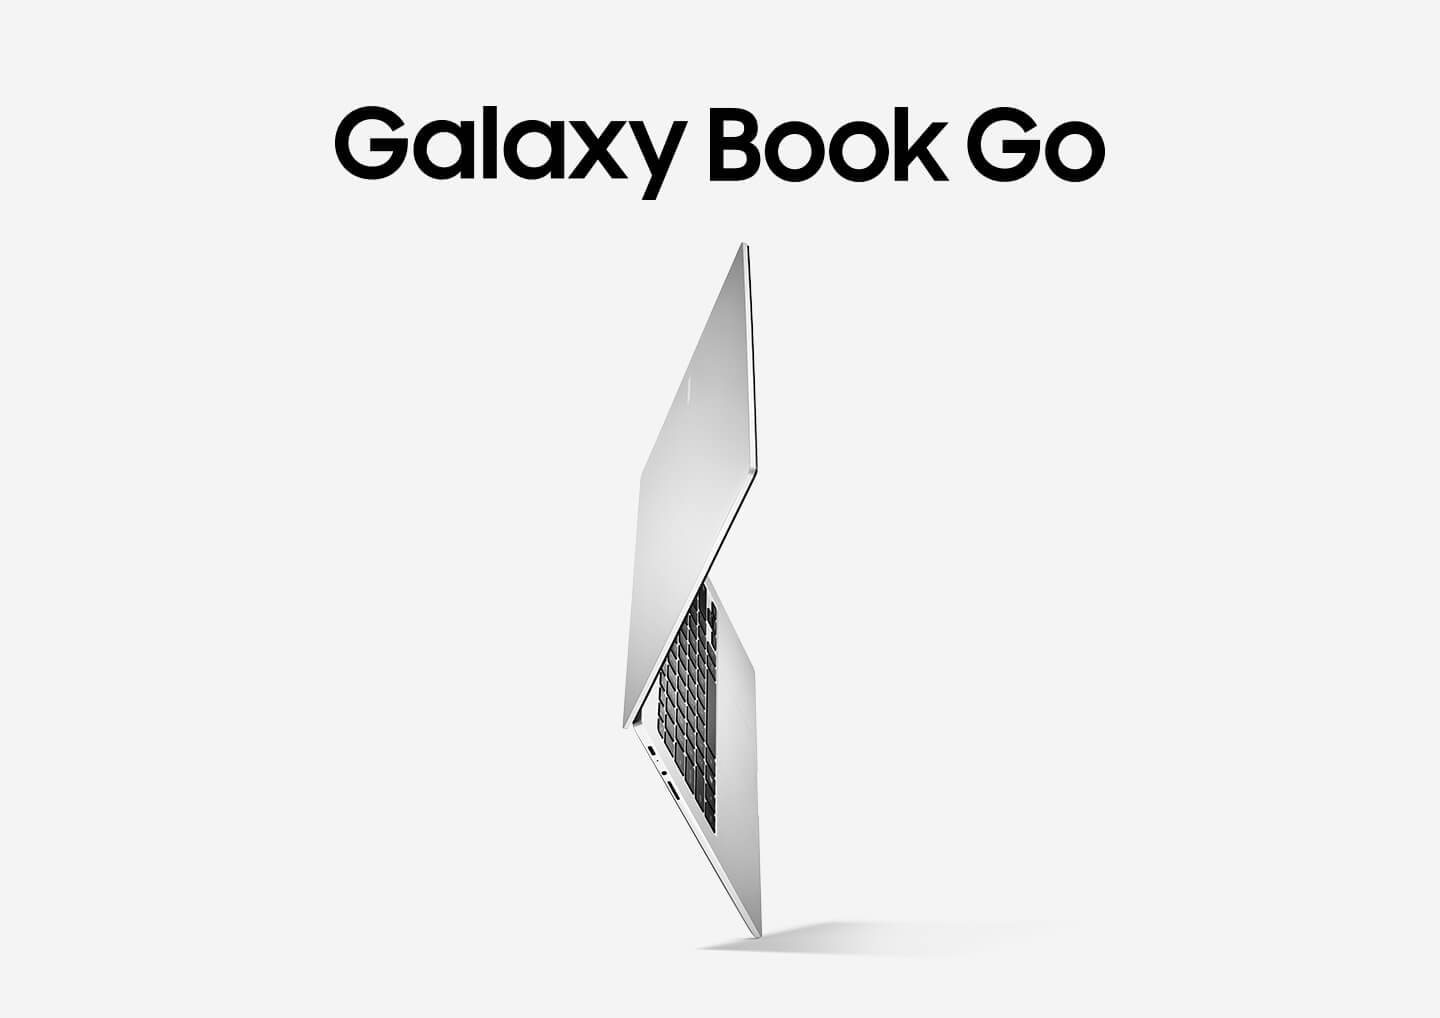 Galaxy Book Go seen unfolded and from the side, showing the exterior of the display half, and interior where the keyboard and touchpad are. It stands on a corner to demonstrate the lightweight form factor.